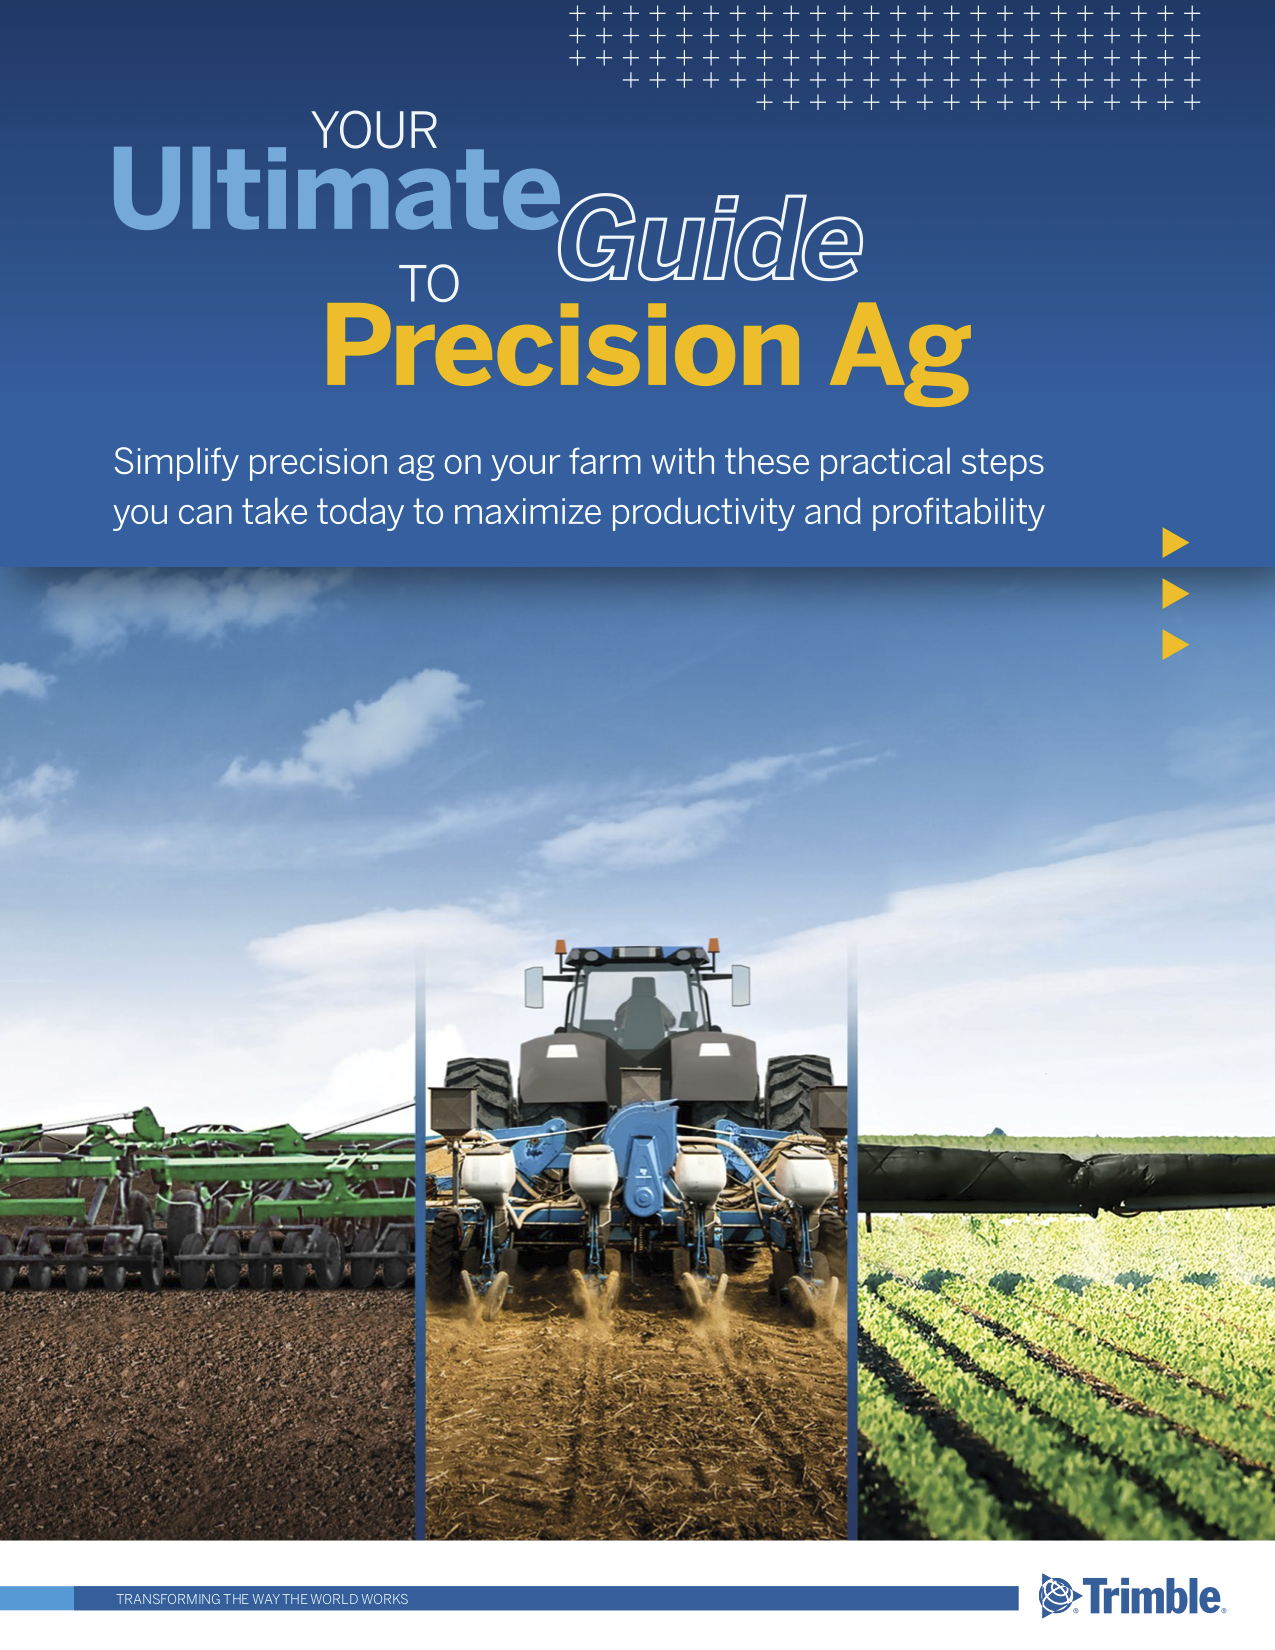 Your Ulitmate Guide to Precision Ag ebook cover